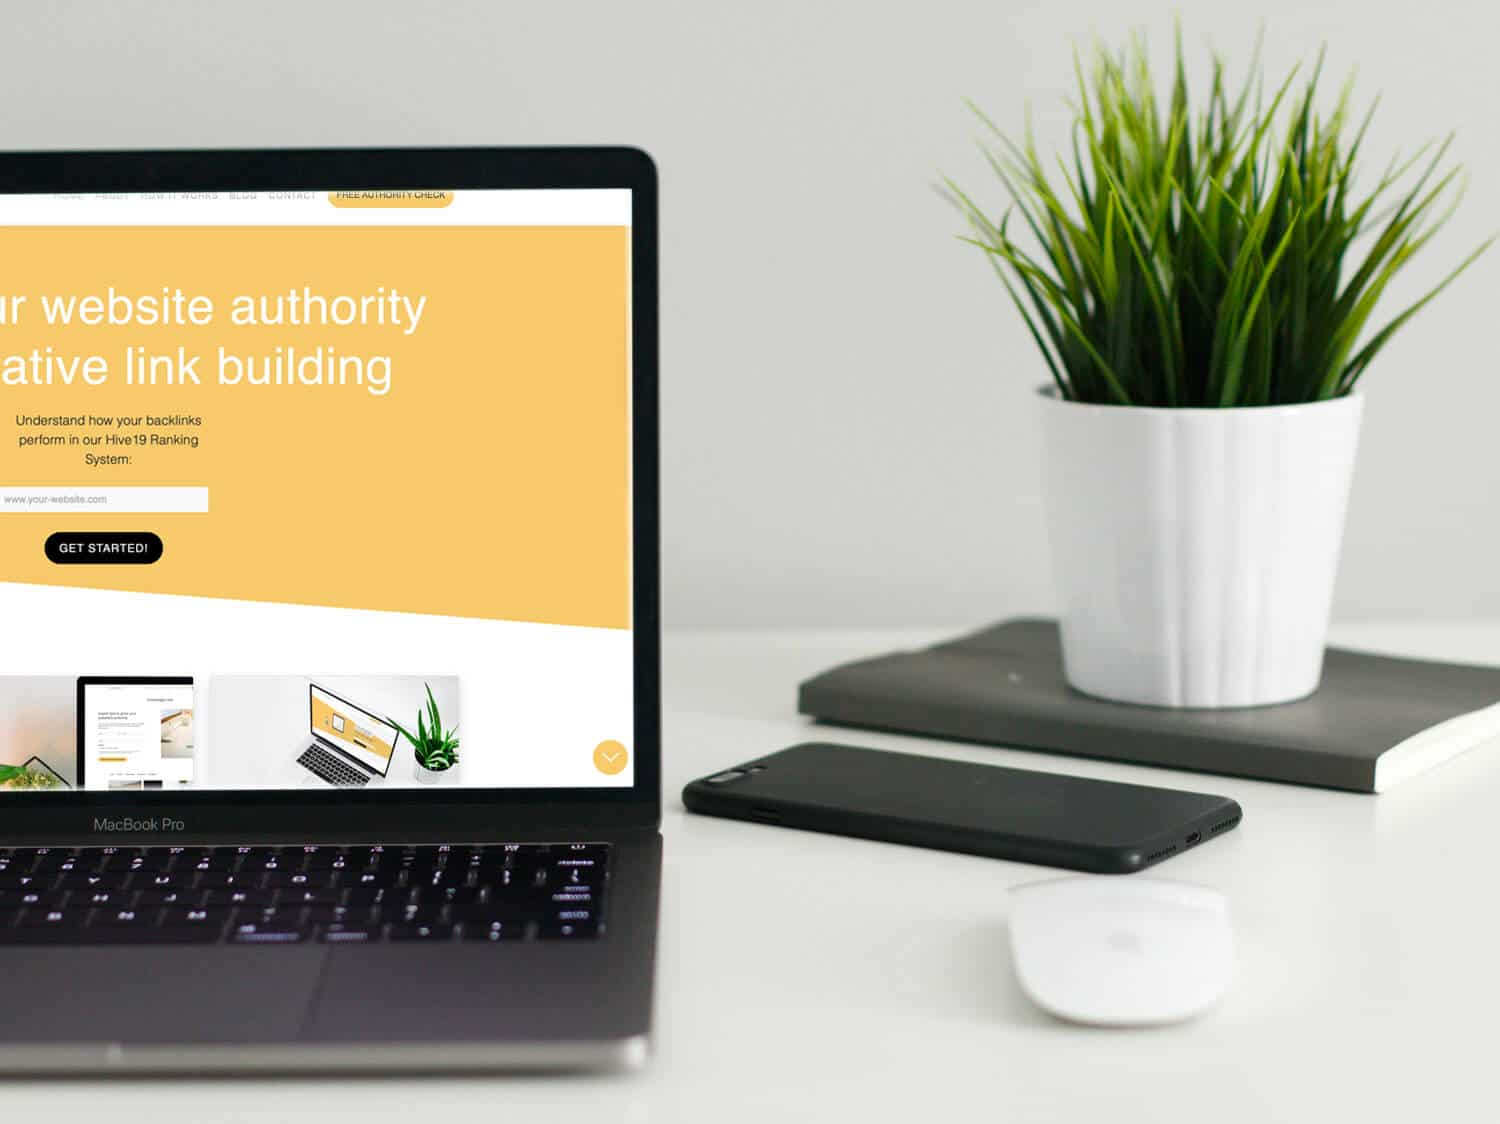 Hive19 Series: How to Build Links for eCommerce Websites